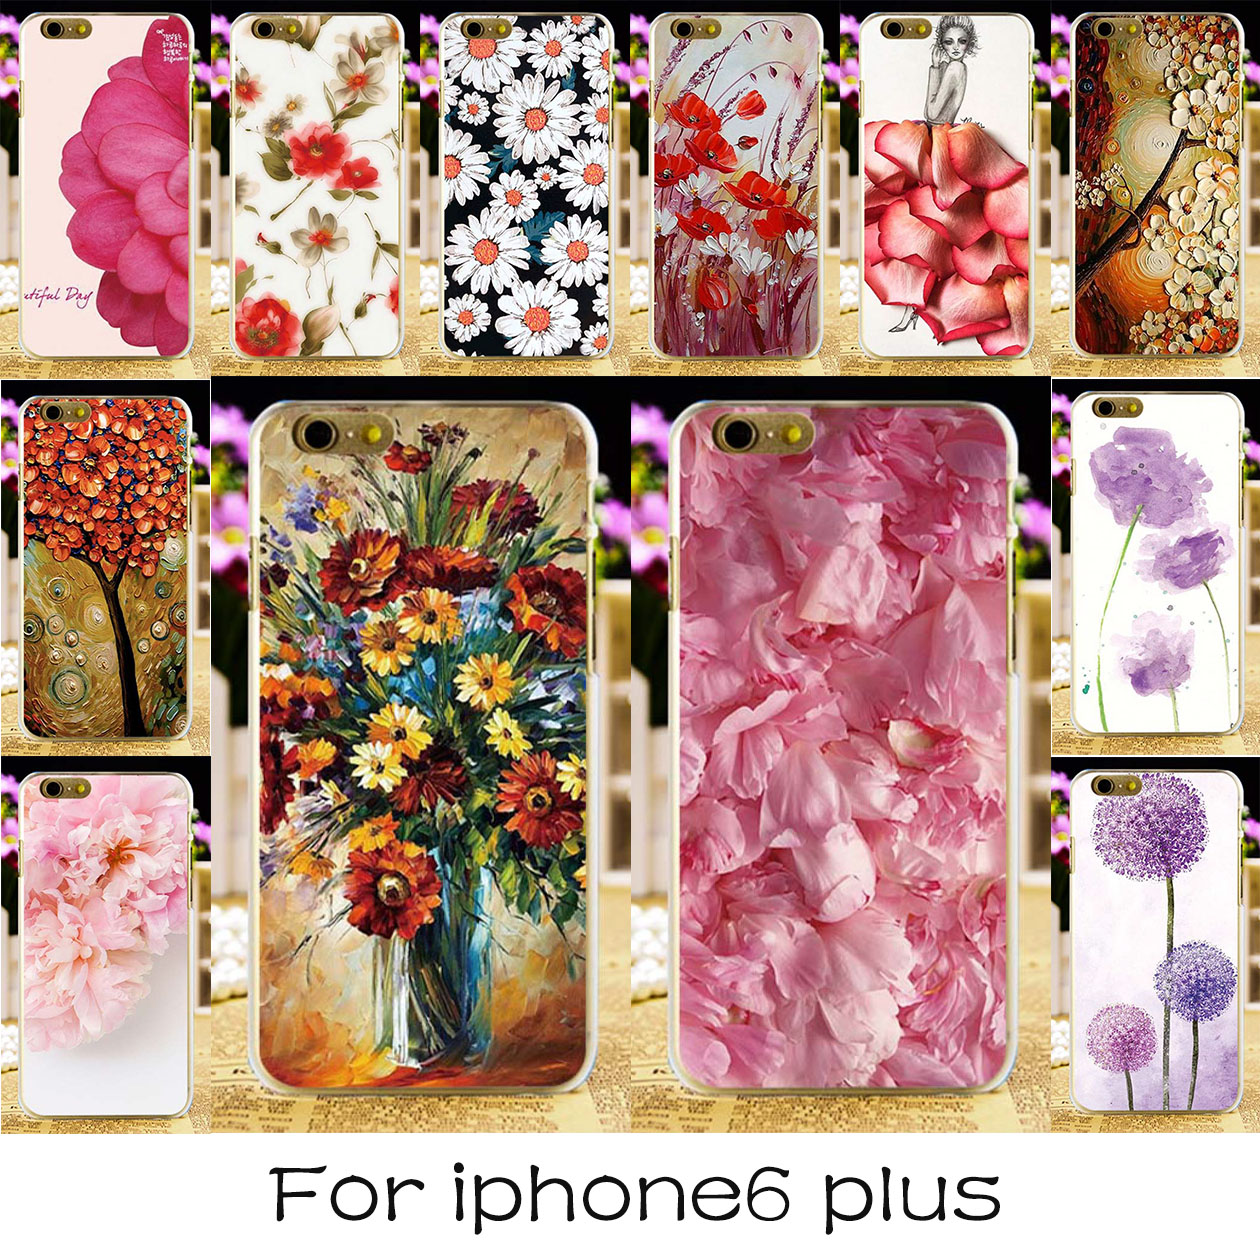 Painted Soft TPU & Hard Plastic Phone Cases For Apple iPhone 6 Plus iPhone6 Plus 5.5 inch Case Beautiful Flowers Back Covers Bag(China)